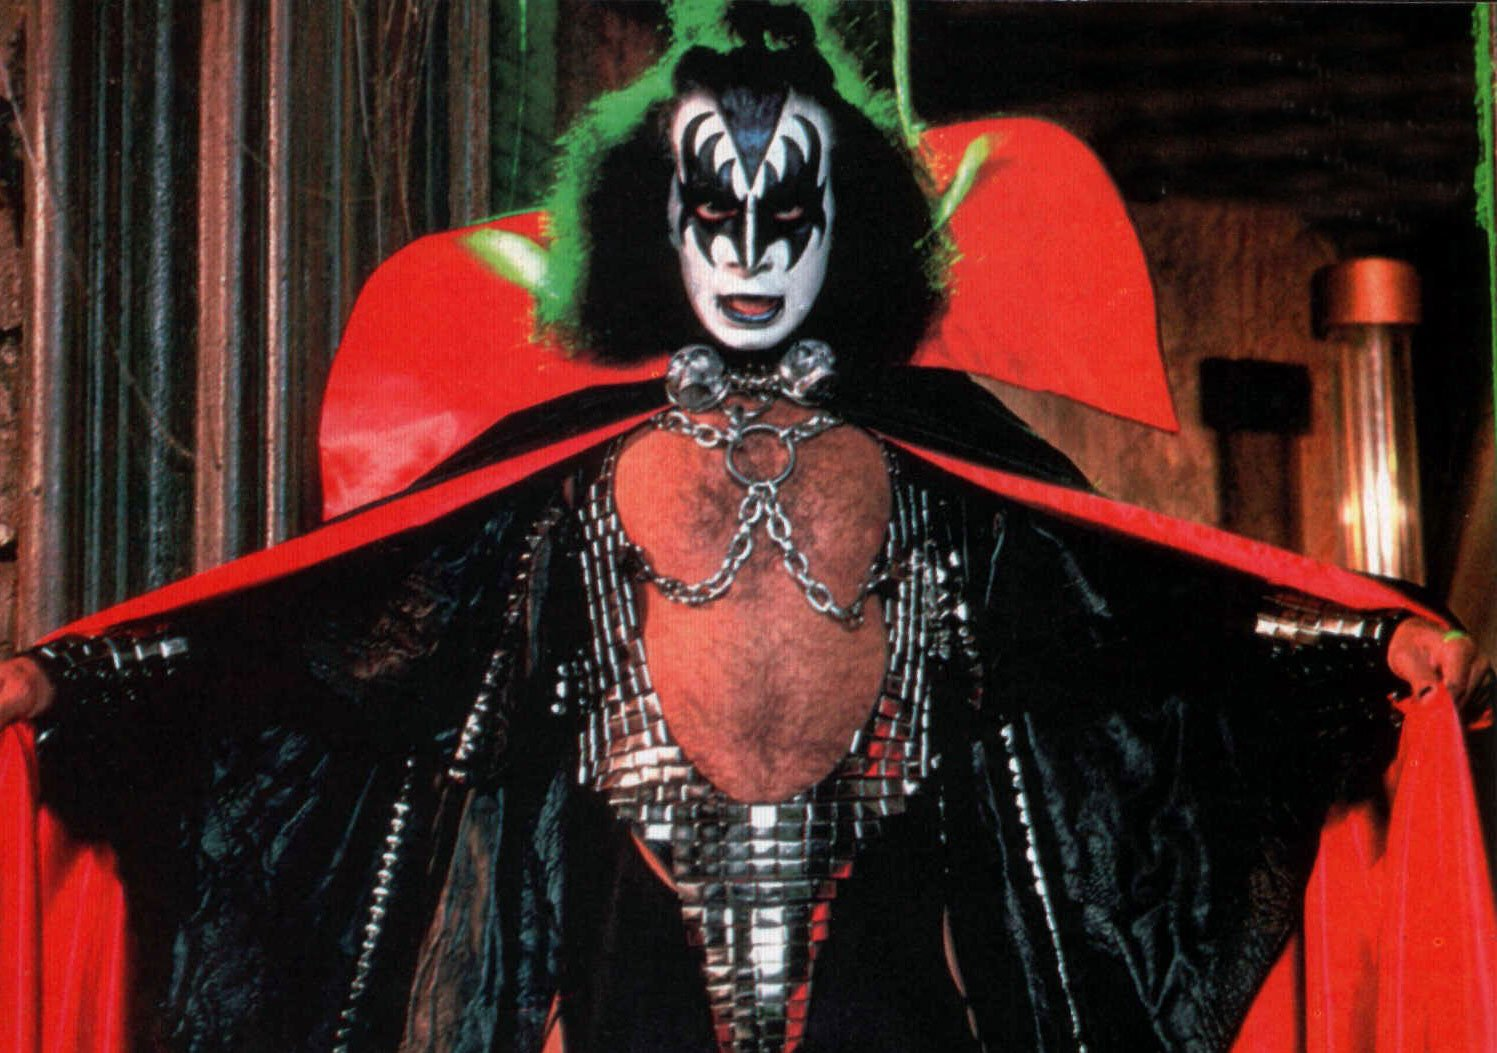 Dystopian Book Club Podcast: Gene Simmons' Kiss and Make-Up